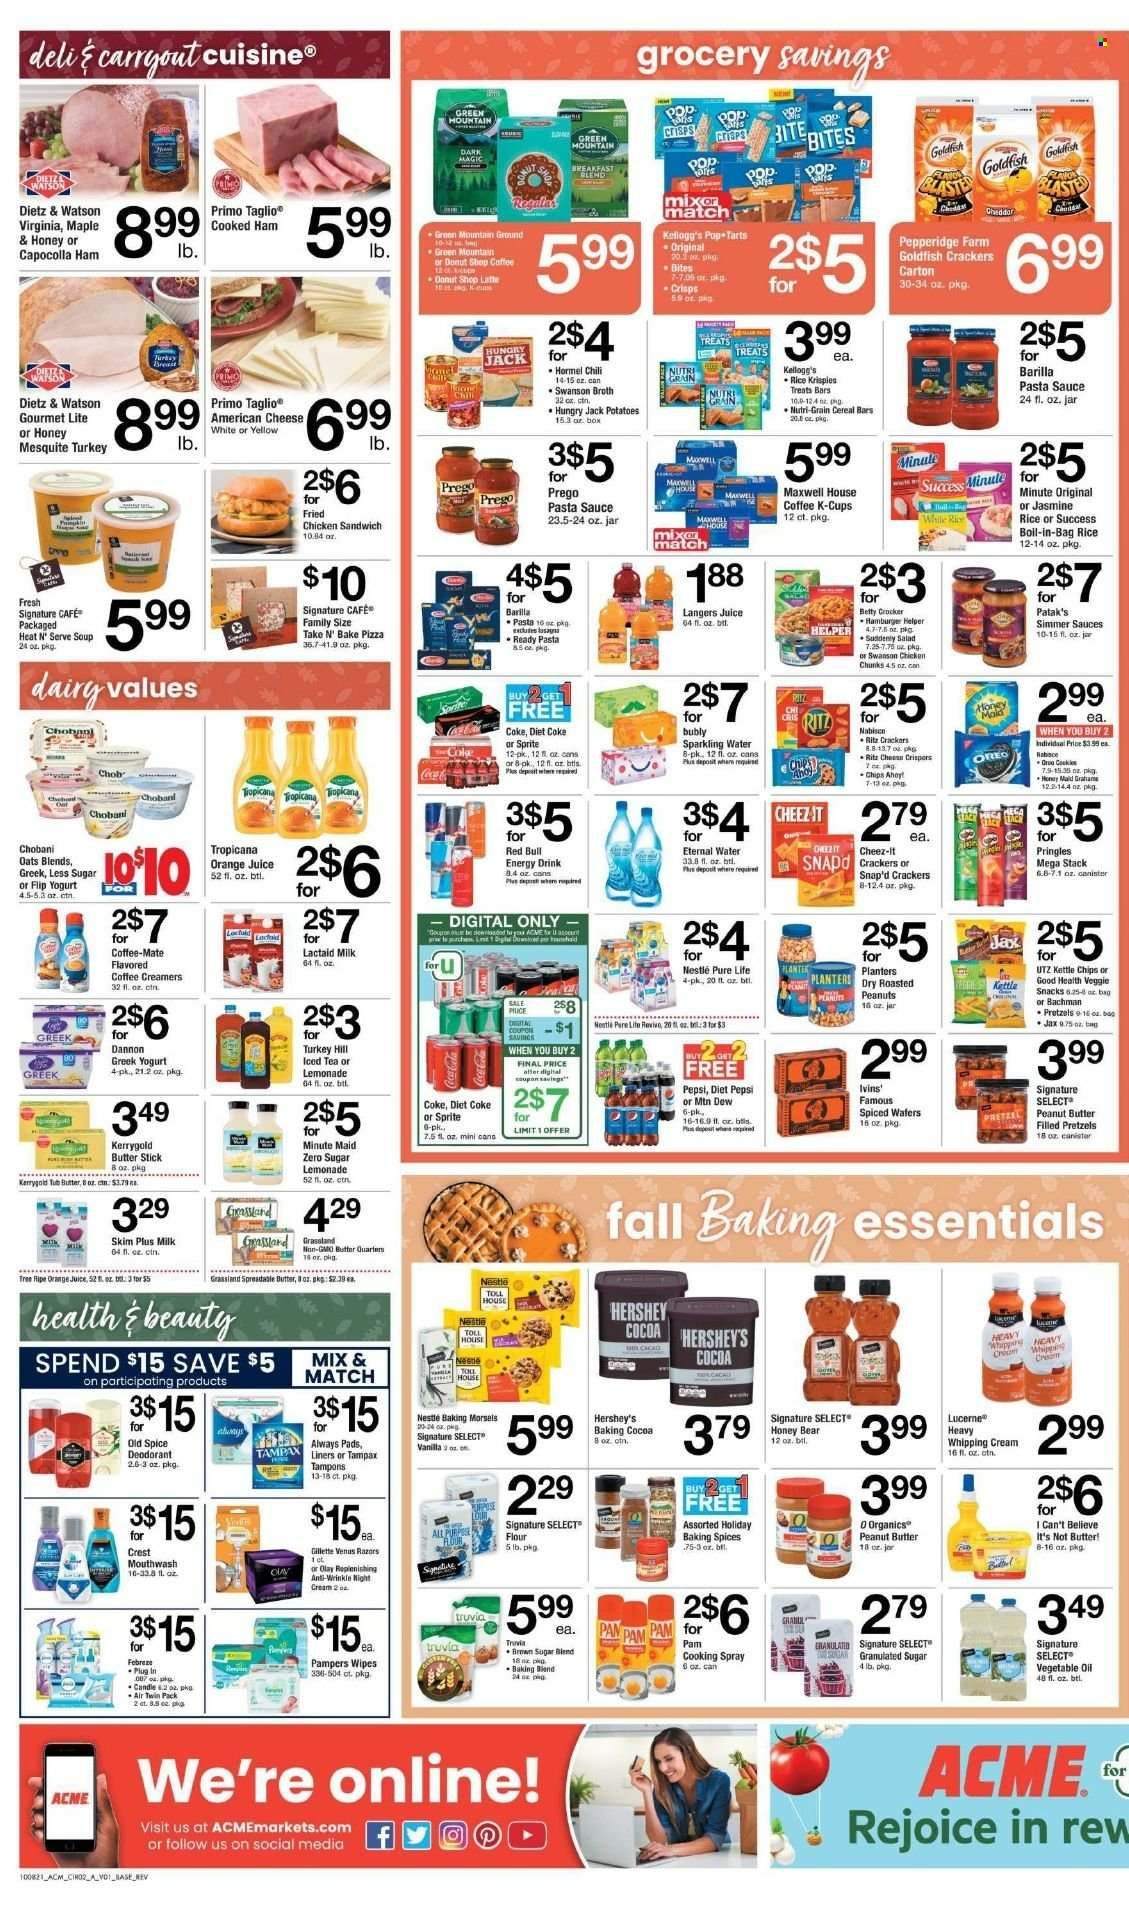 ACME Markets Ad from october 13 to 20 2021 - Page 2